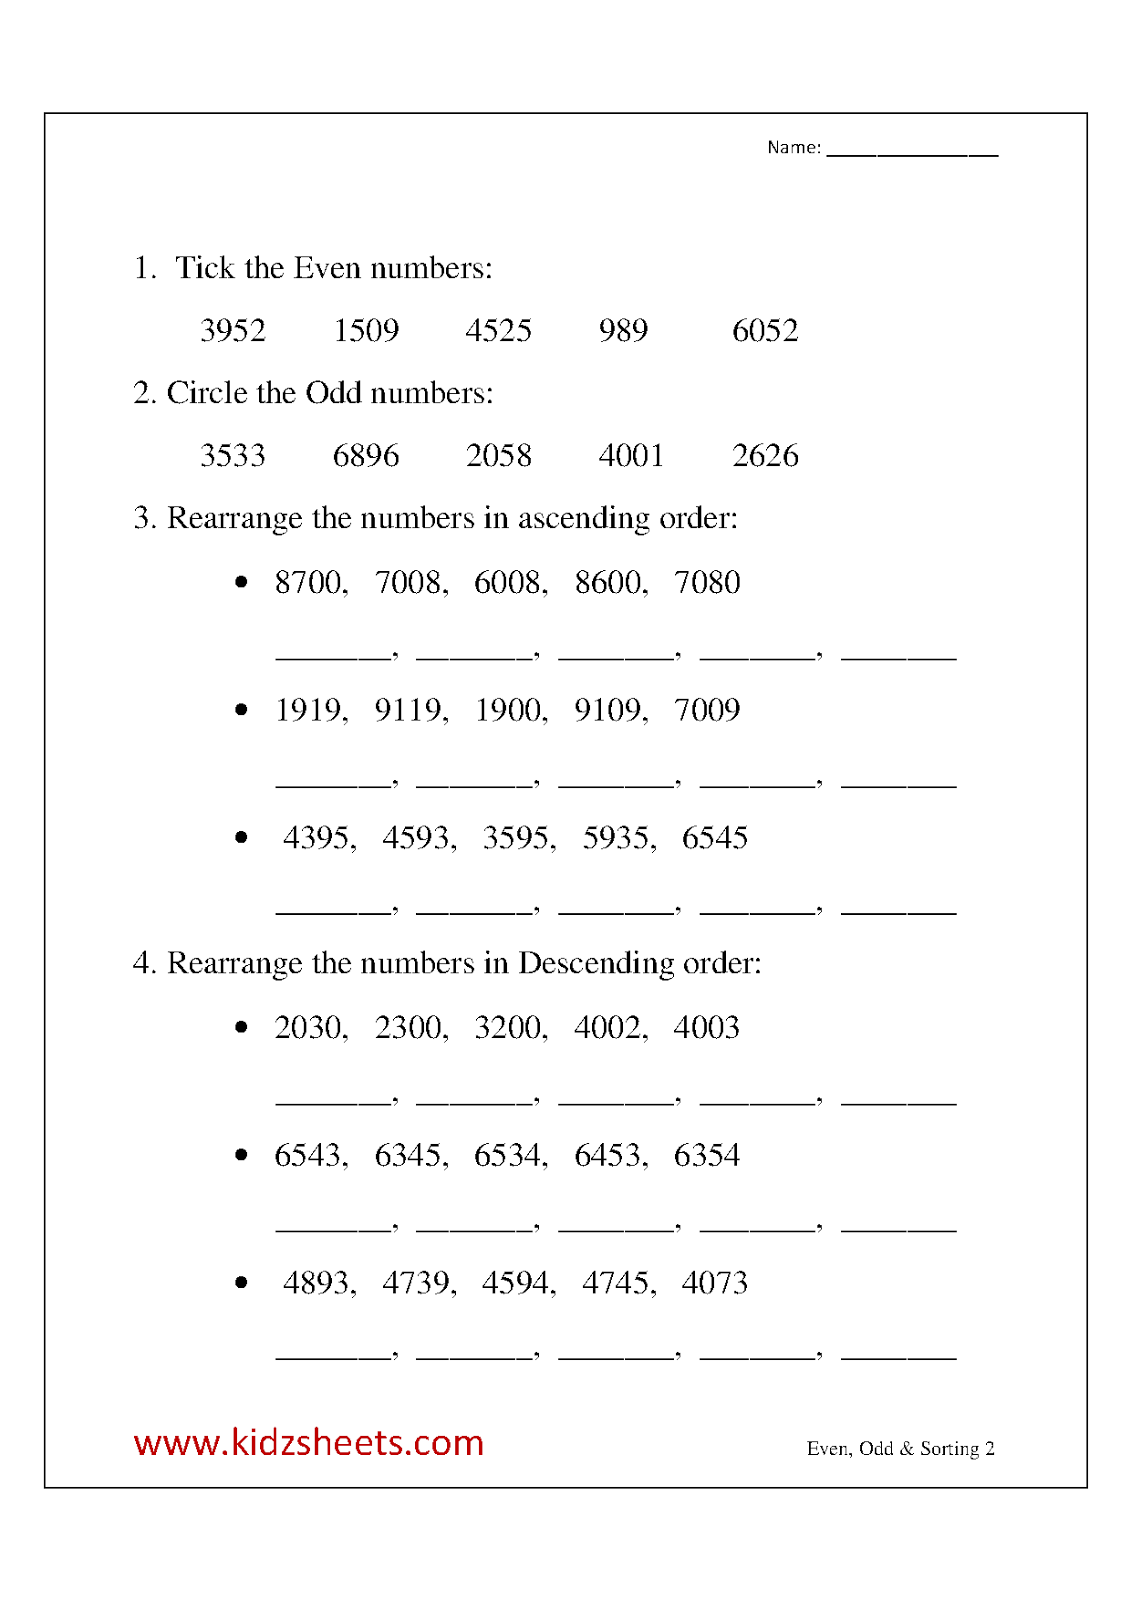 Kidz Worksheets Third Grade Even Odd Amp Sorting Worksheet2